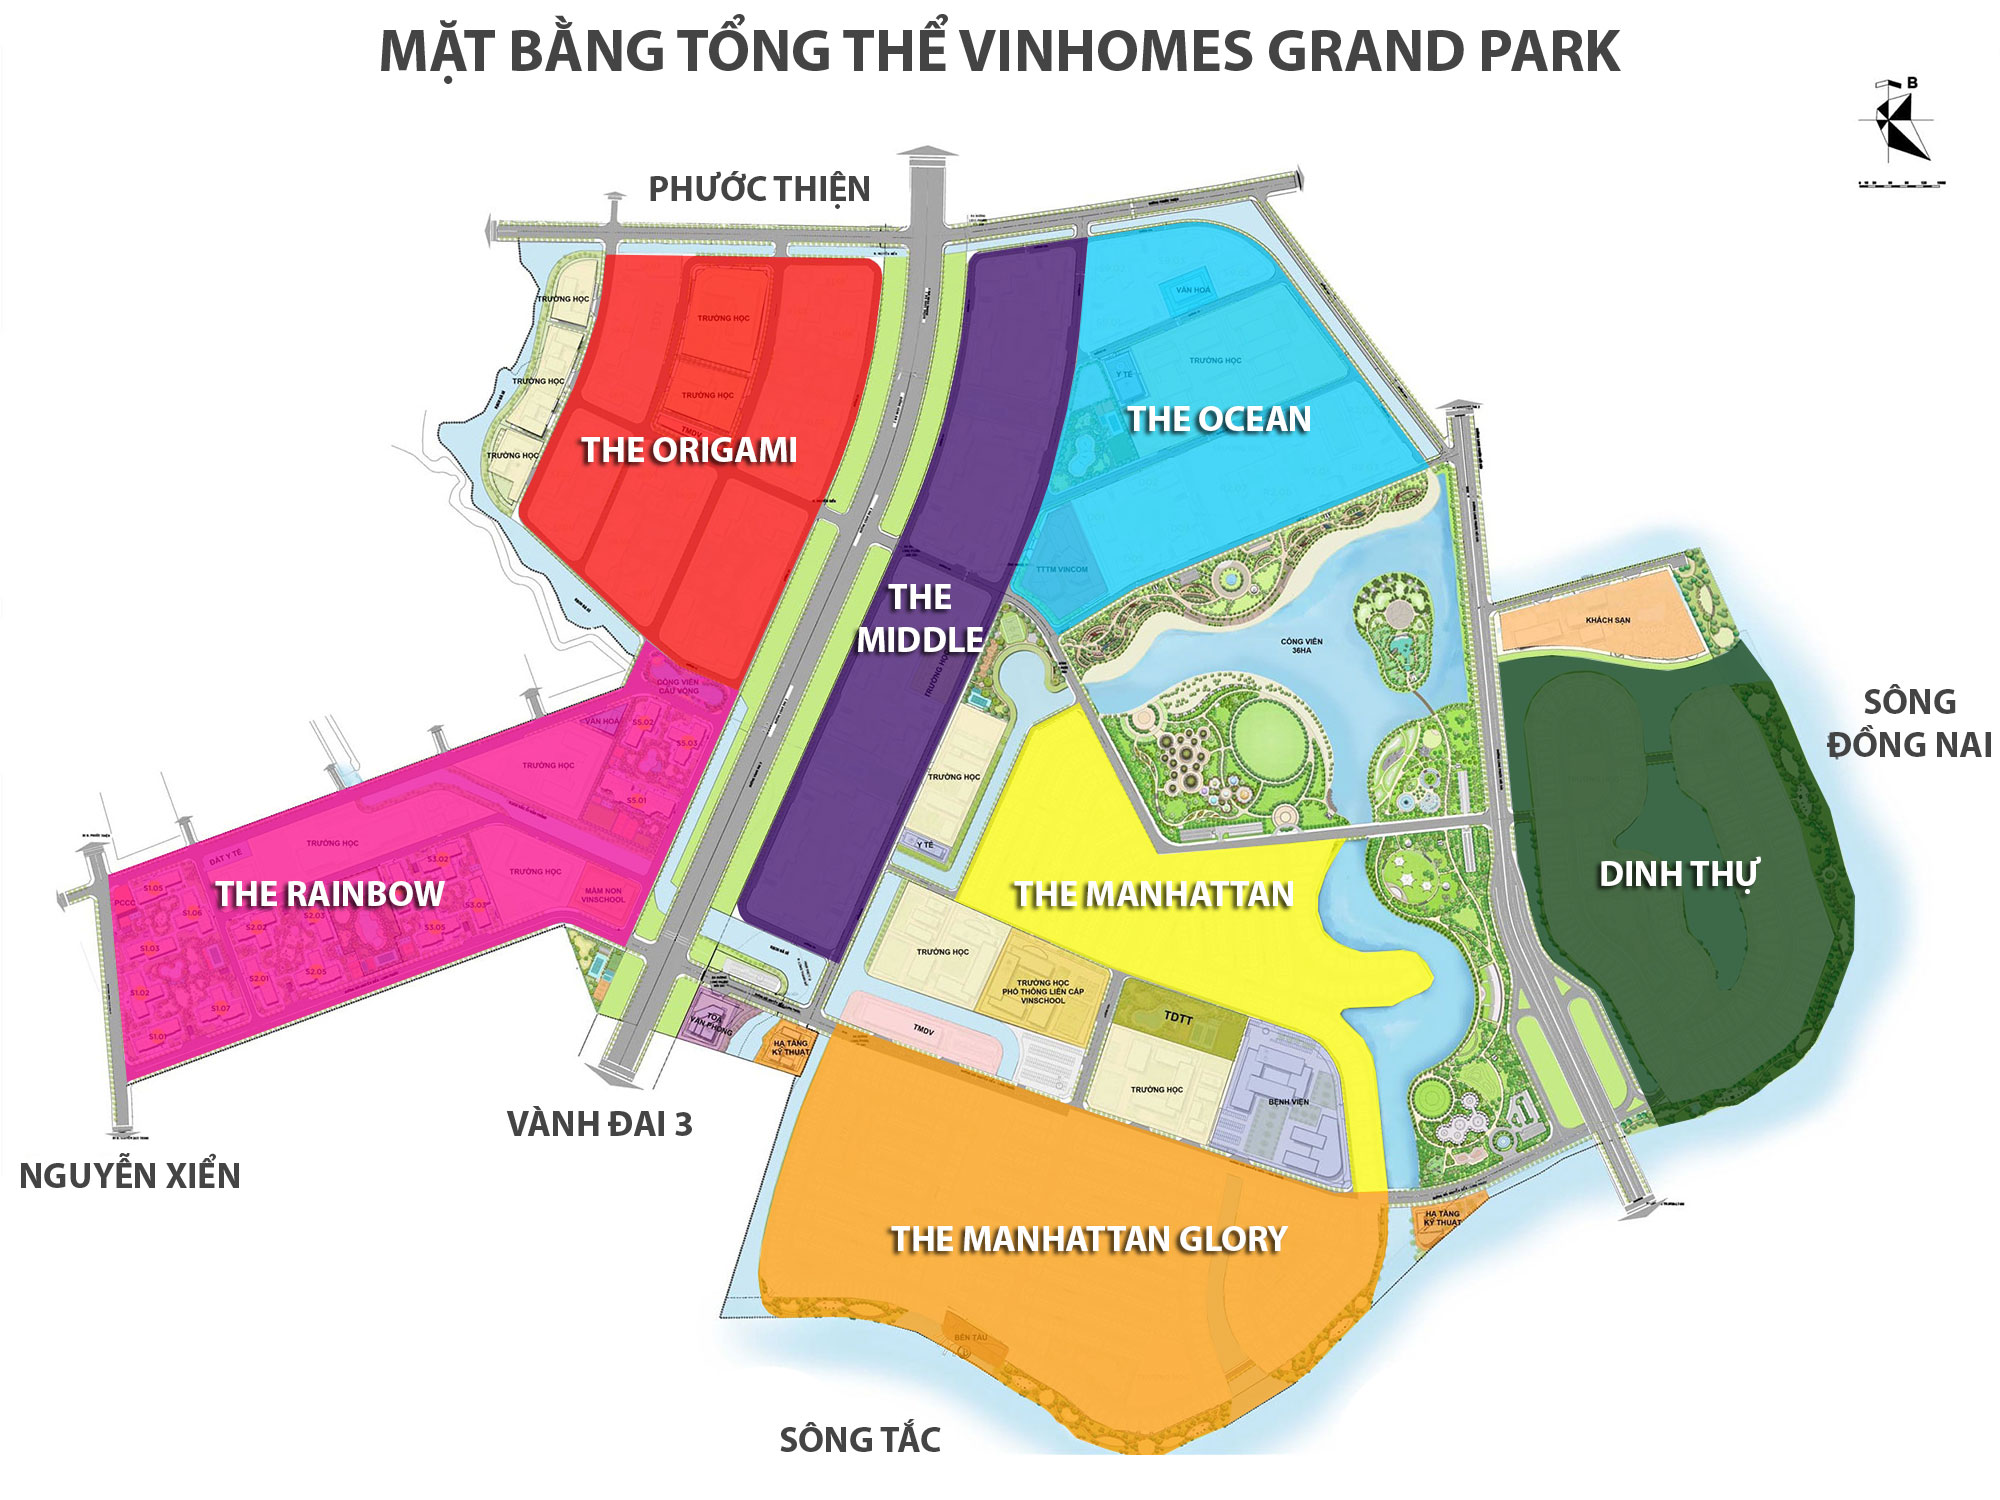 mat-bang-tong-the-vinhomes-grand-park